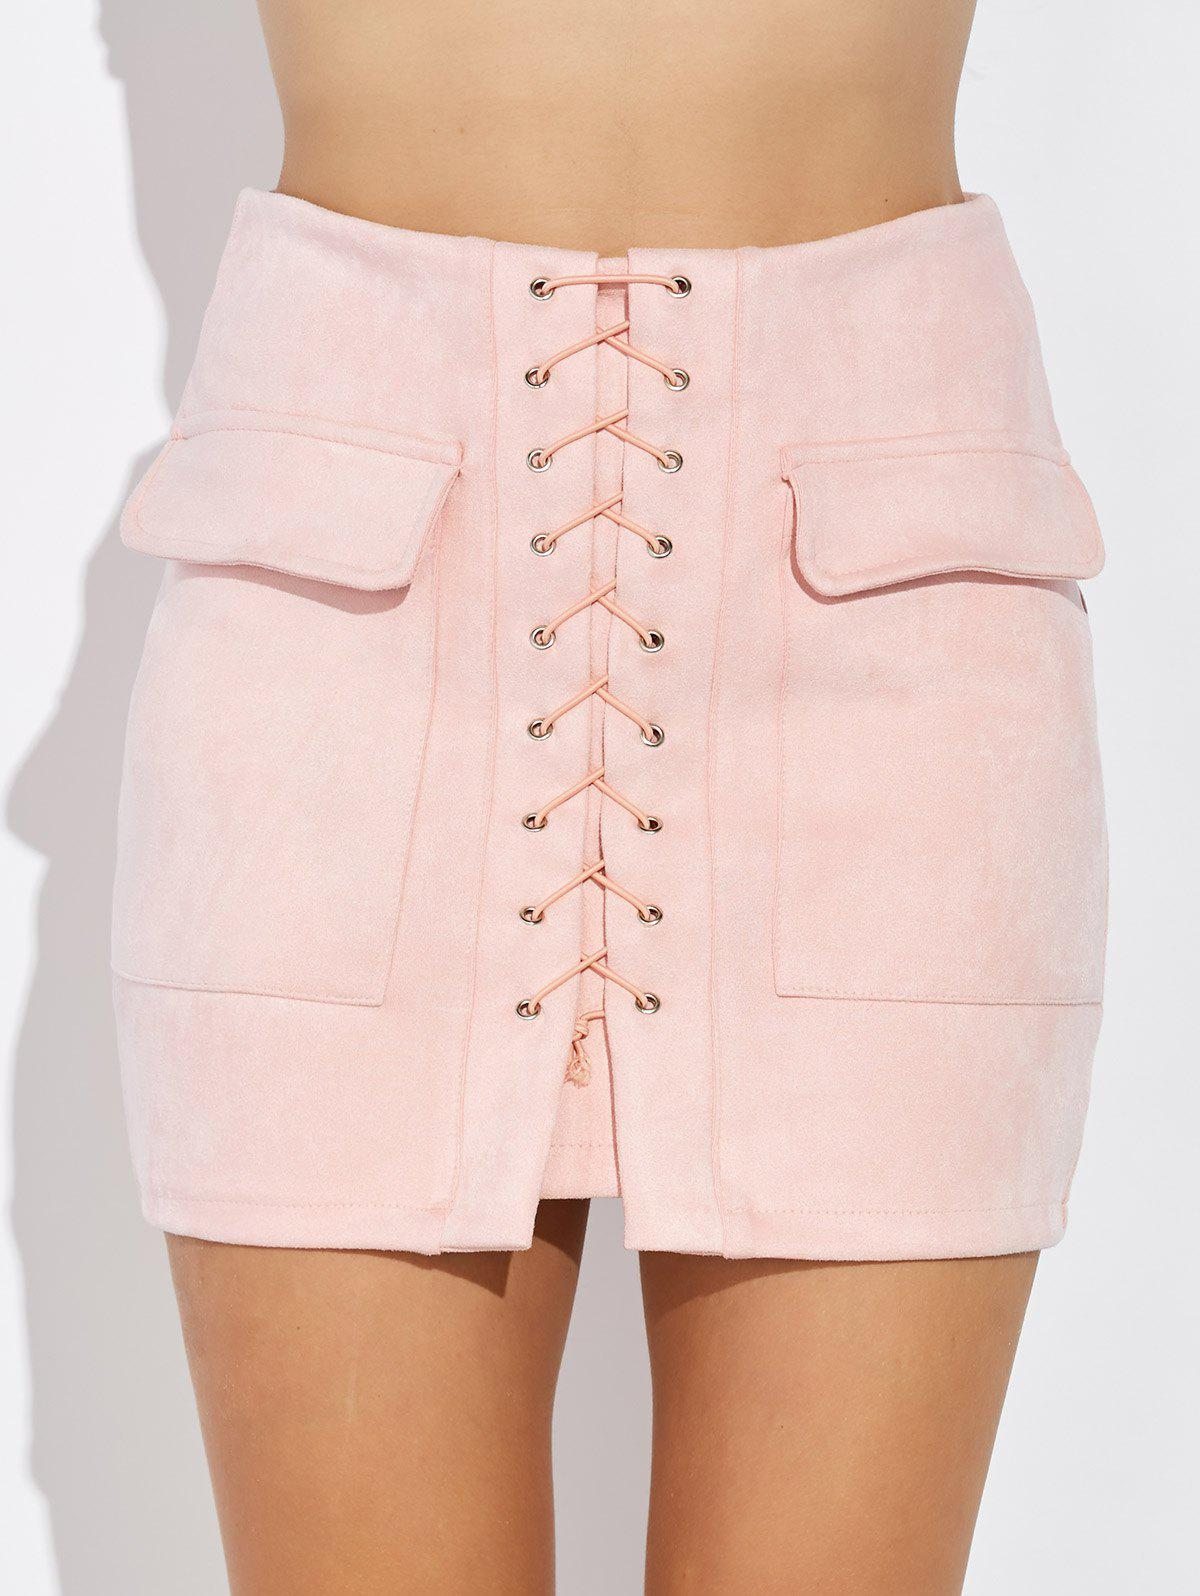 Criss Cross Faux Suede Mini Skirt - PINK XL